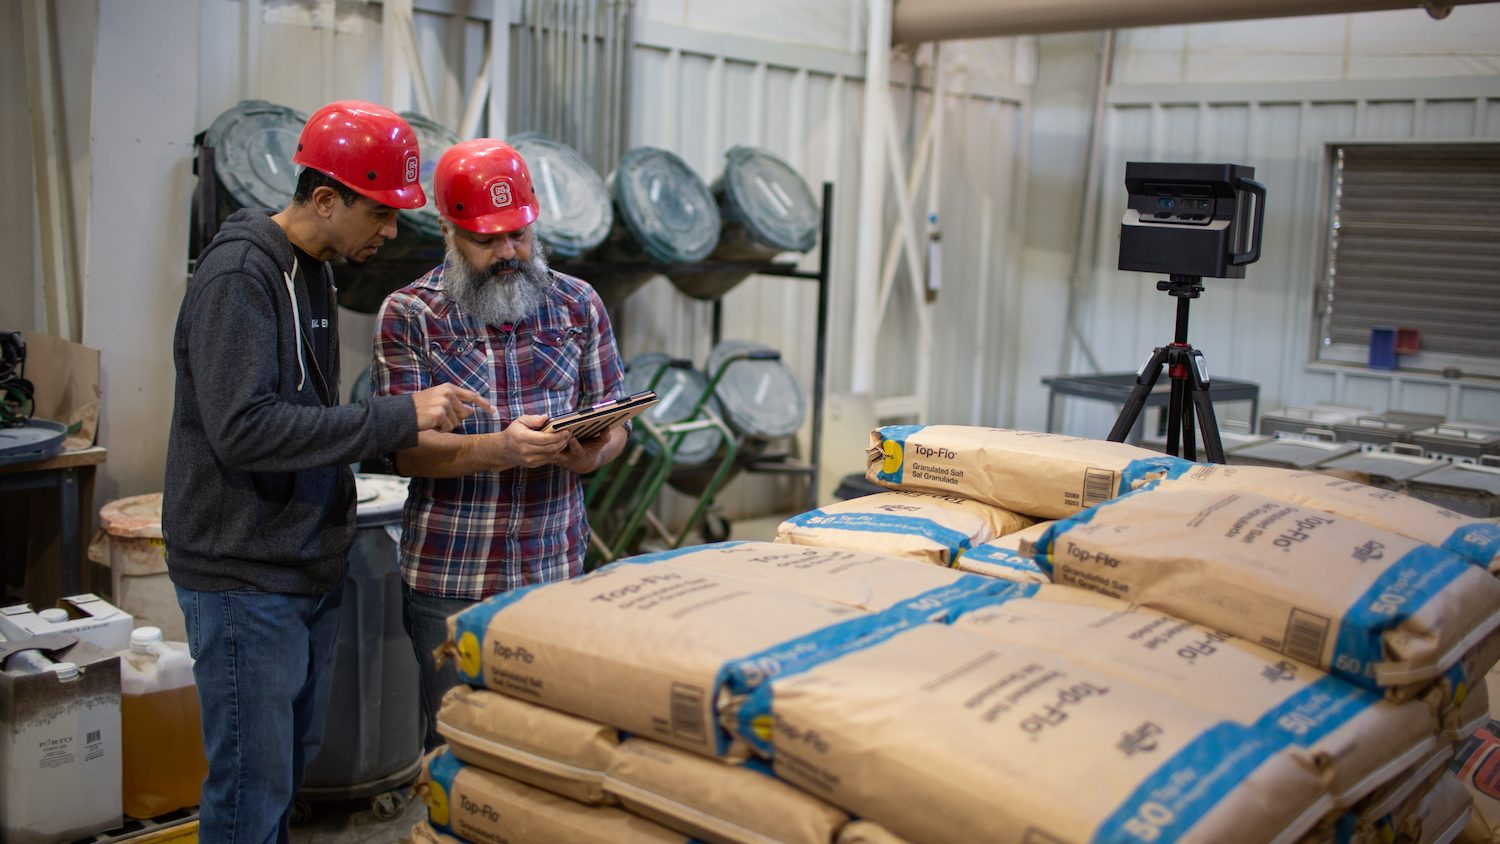 Two workers in red hard hats stand near stacked bags of animal feed